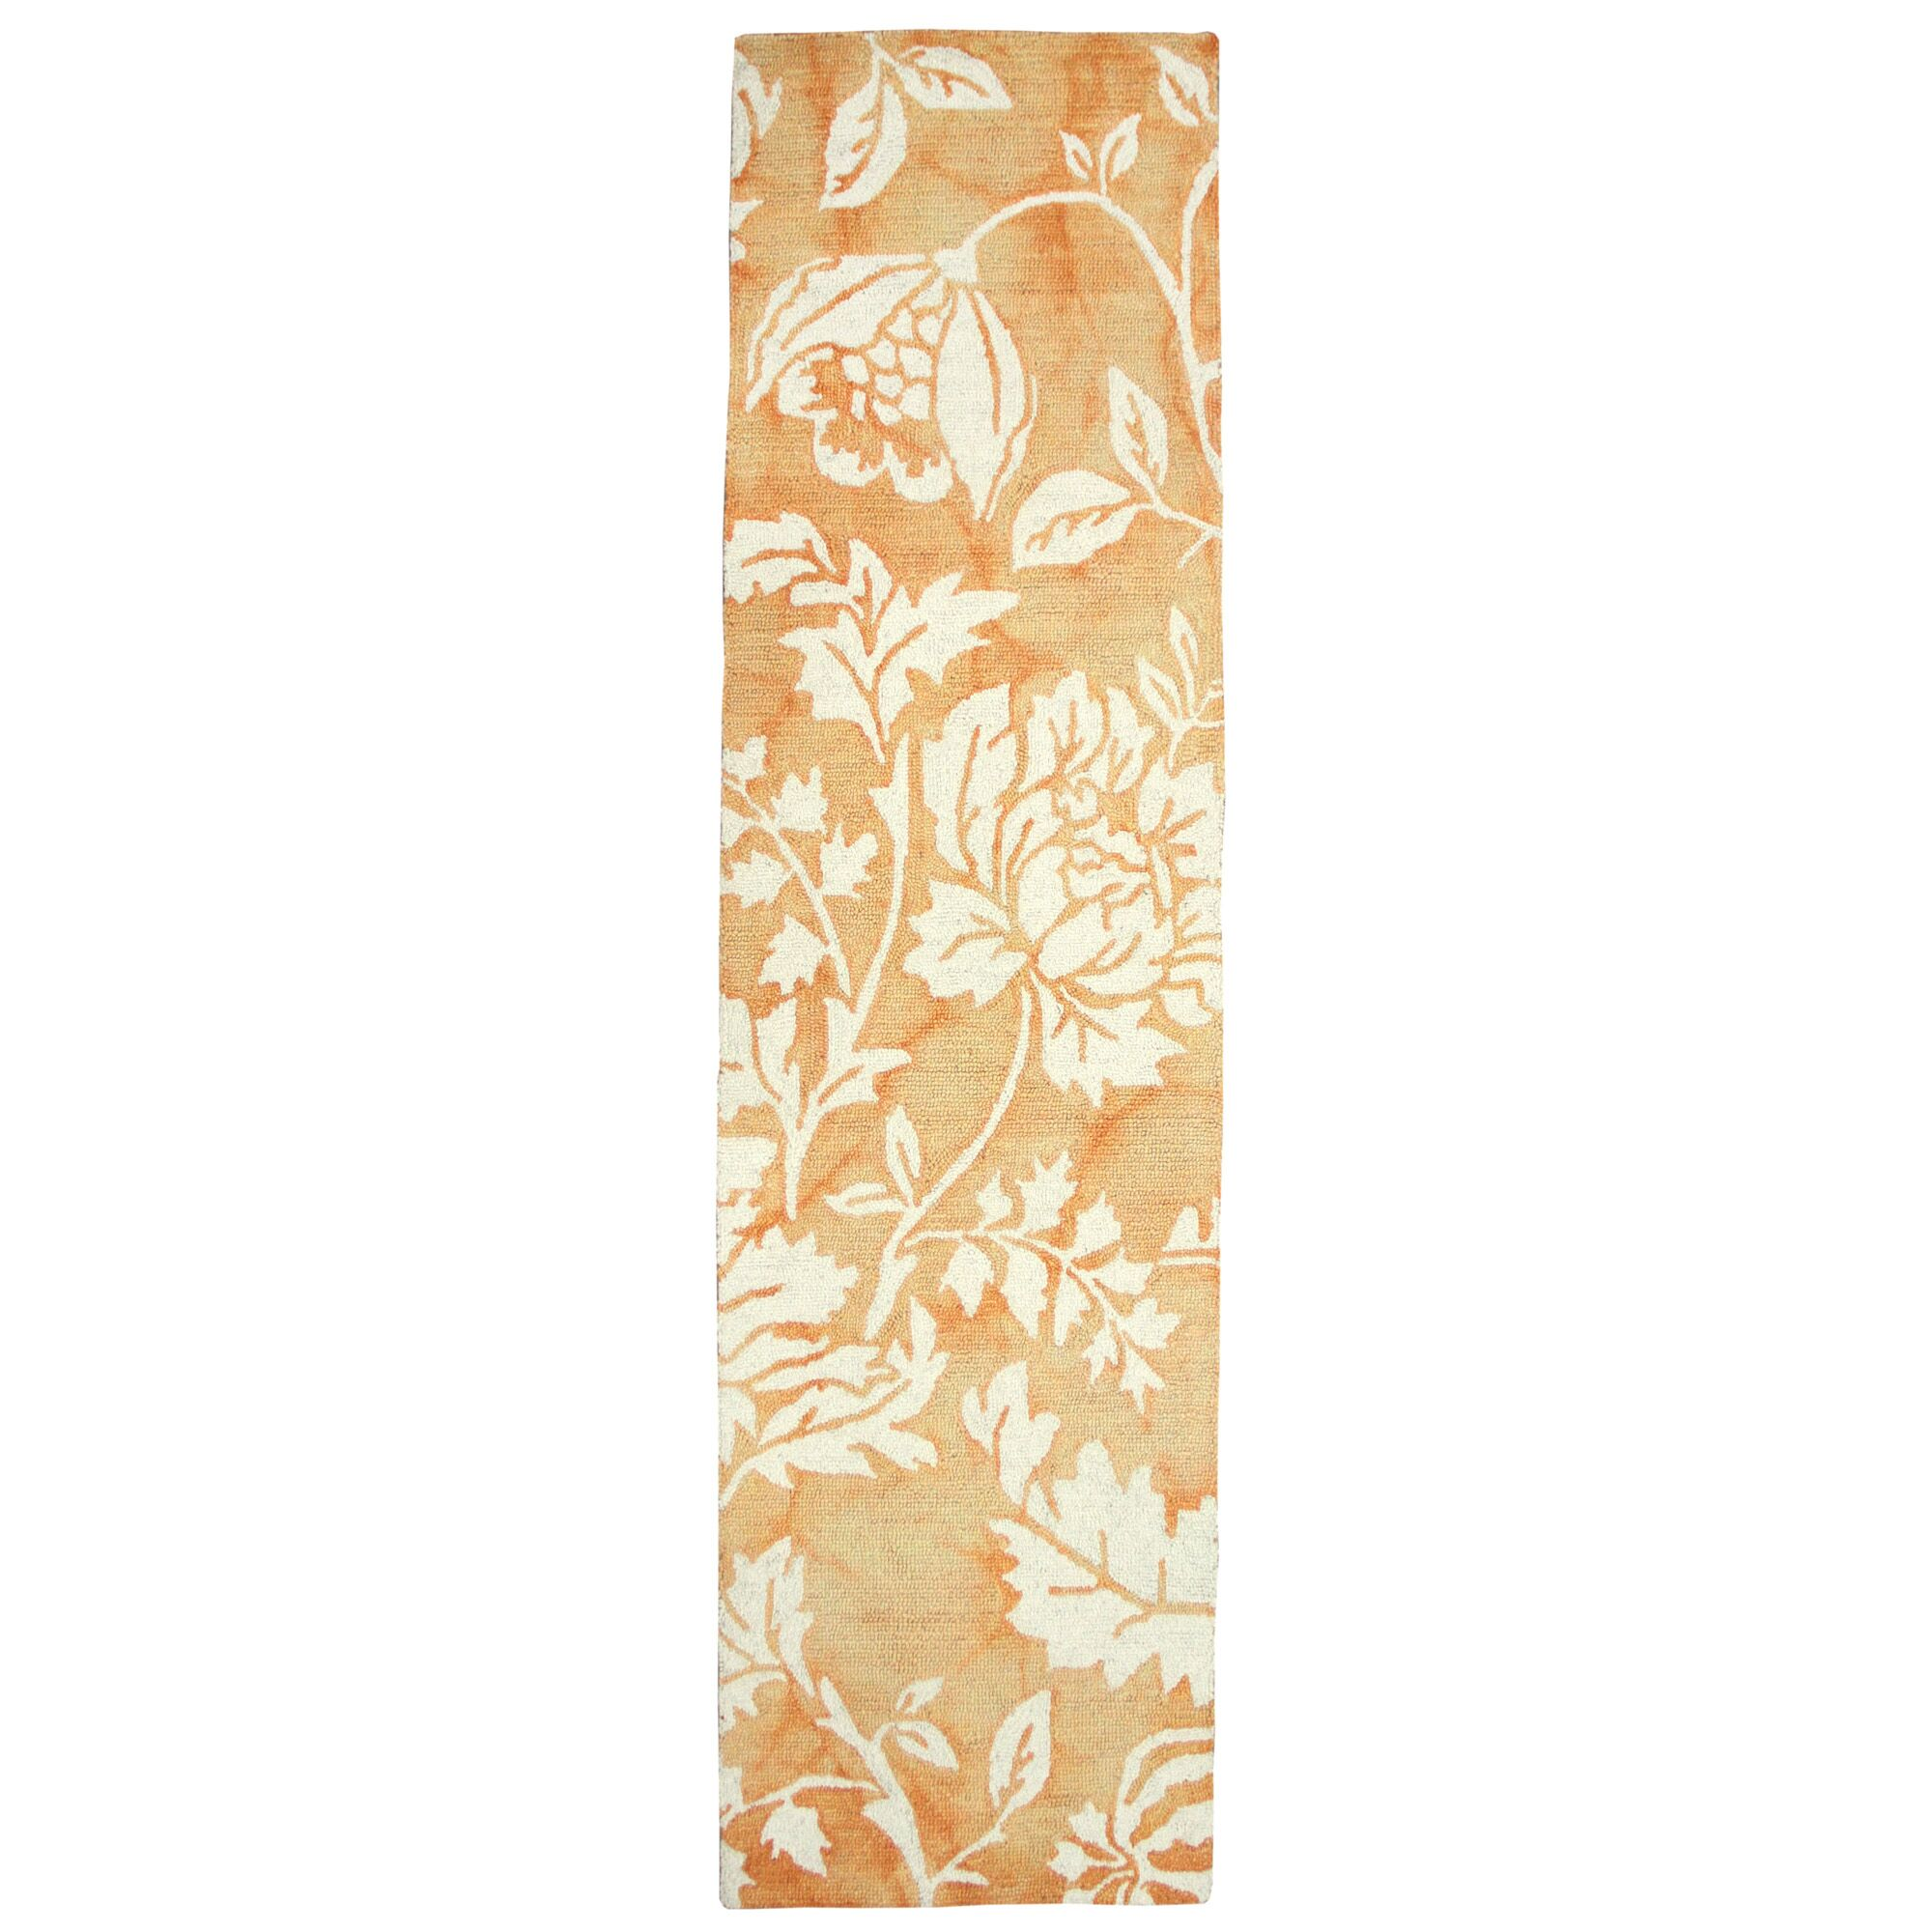 Levittown Hand-Tufted Rust Area Rug Rug Size: Runner 2'3